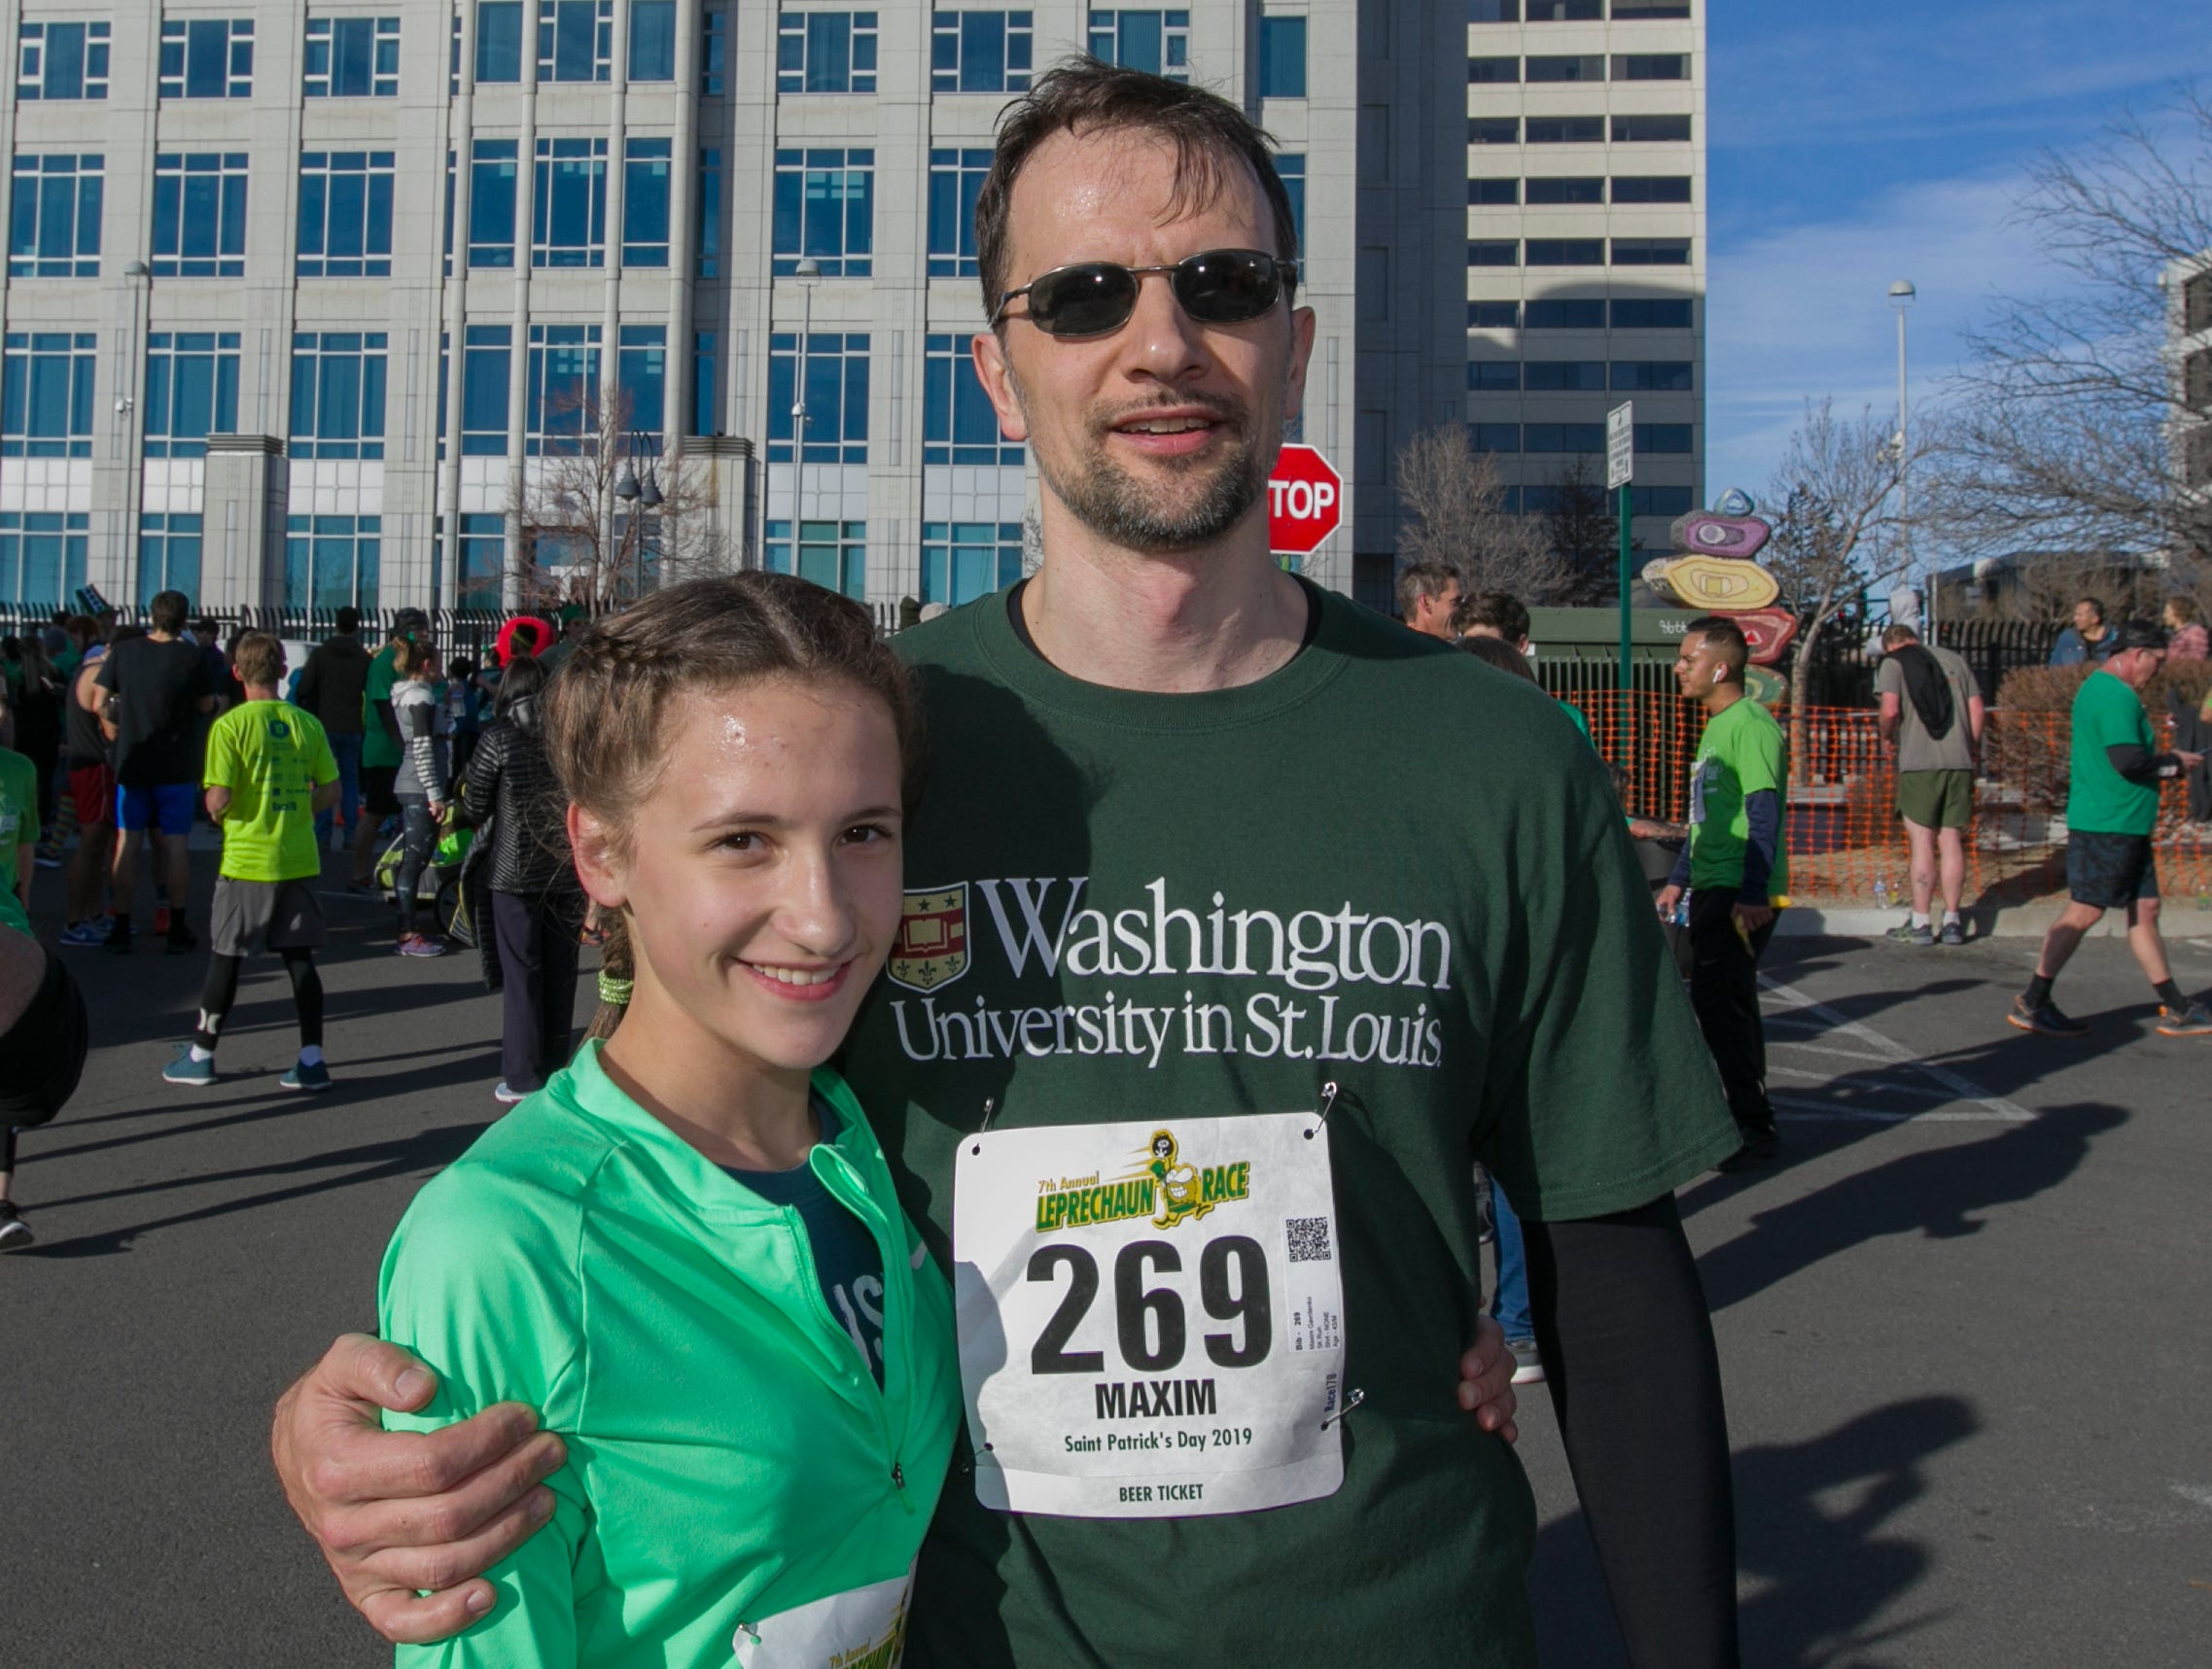 Arina and Maxim after the 7th annual Leprechaun Race in downtown Reno, Nevada on Sunday, March 17, 2019.